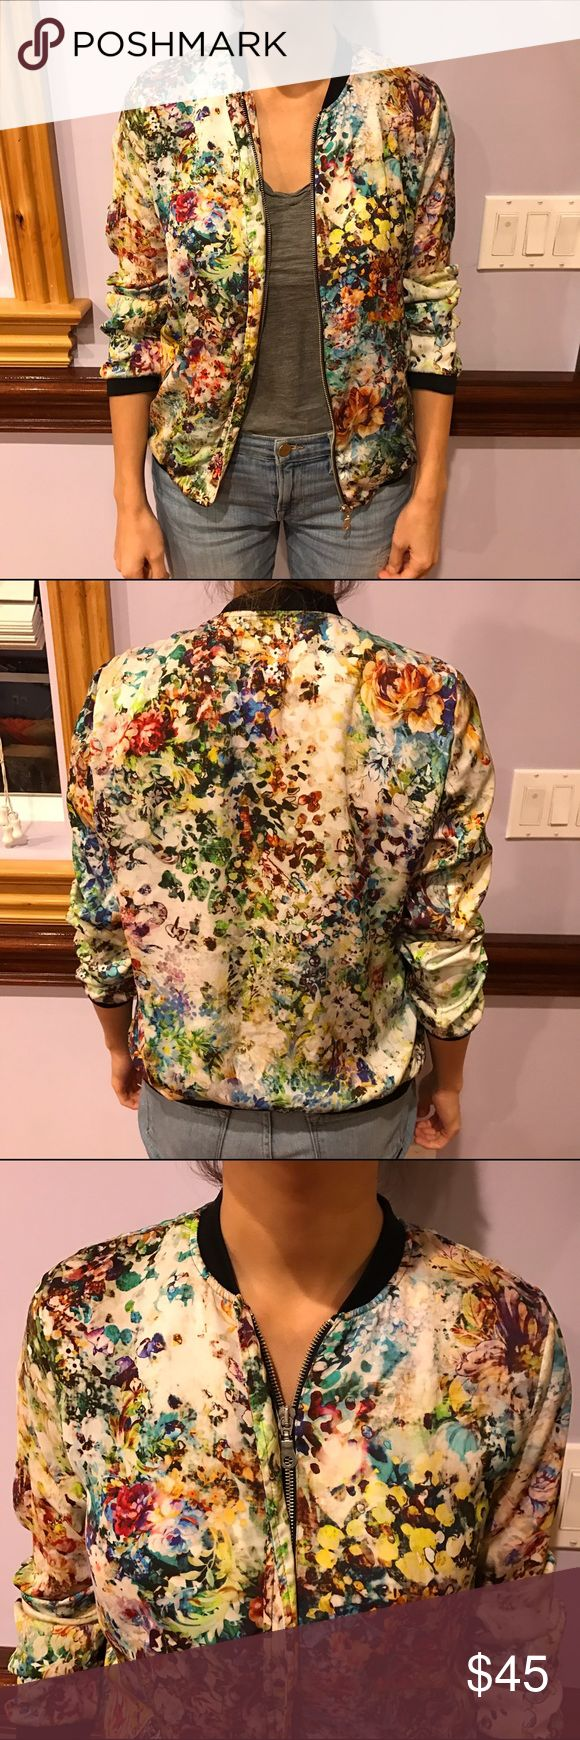 Zara floral bomber jacket Lightweight bomber jacket with pockets. Super cute in great condition. Sz small true to size. Zara Jackets & Coats